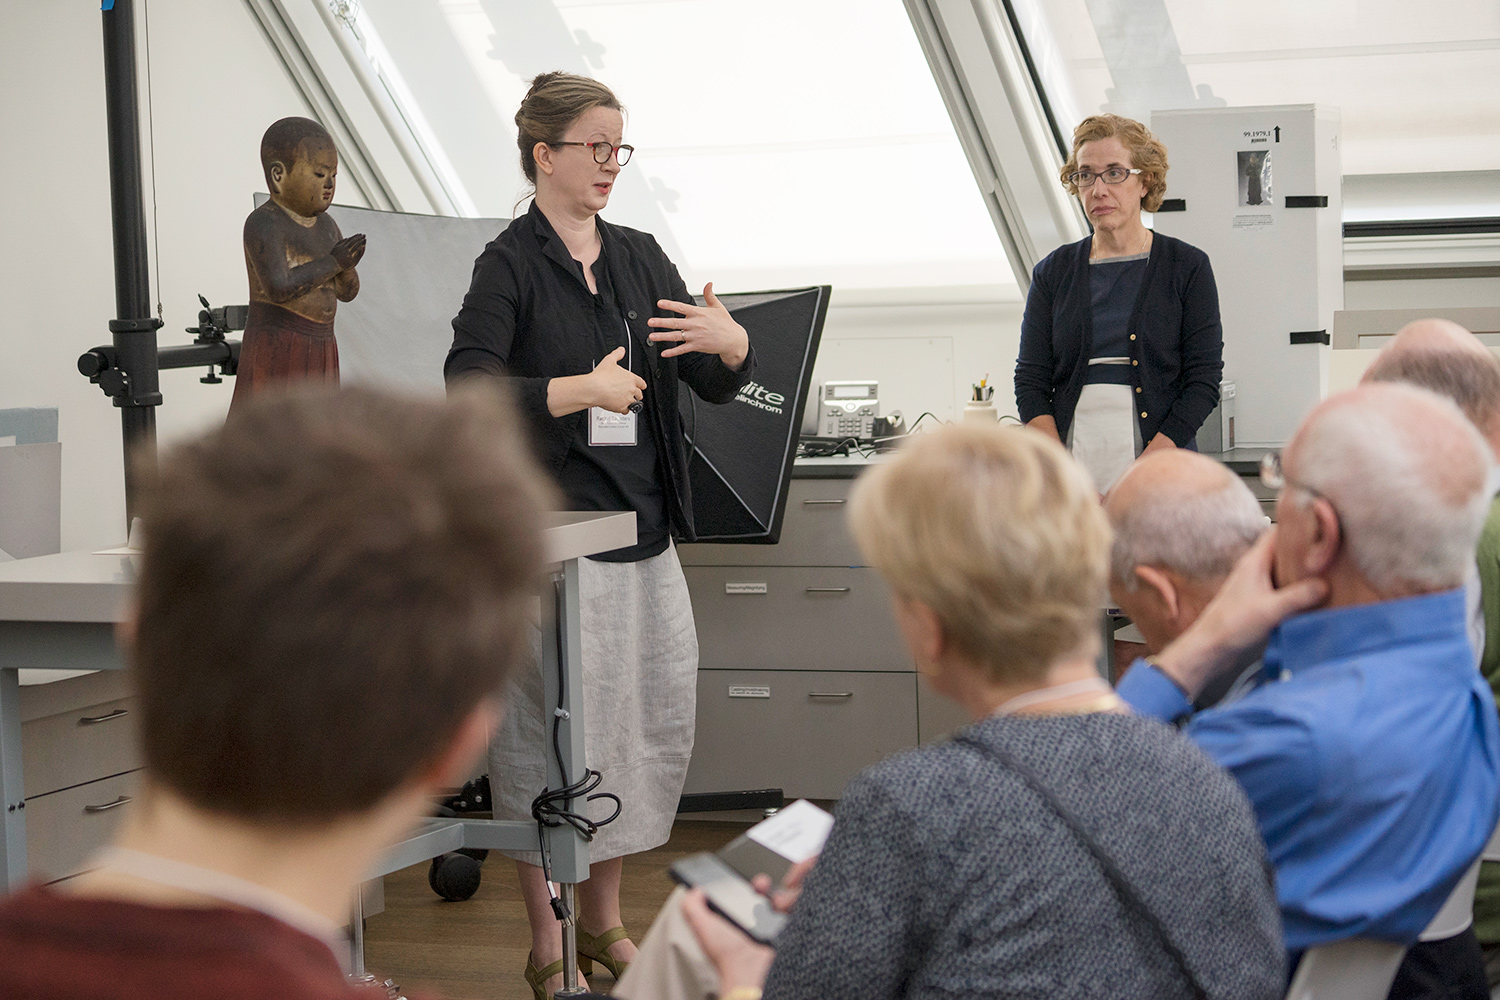 Also in the Straus Center, Rachel Saunders, the Abby Aldrich Rockefeller Associate Curator of Asian Art, shares recent findings about the museums' 13th-century sculpture of Prince Shōtoku.